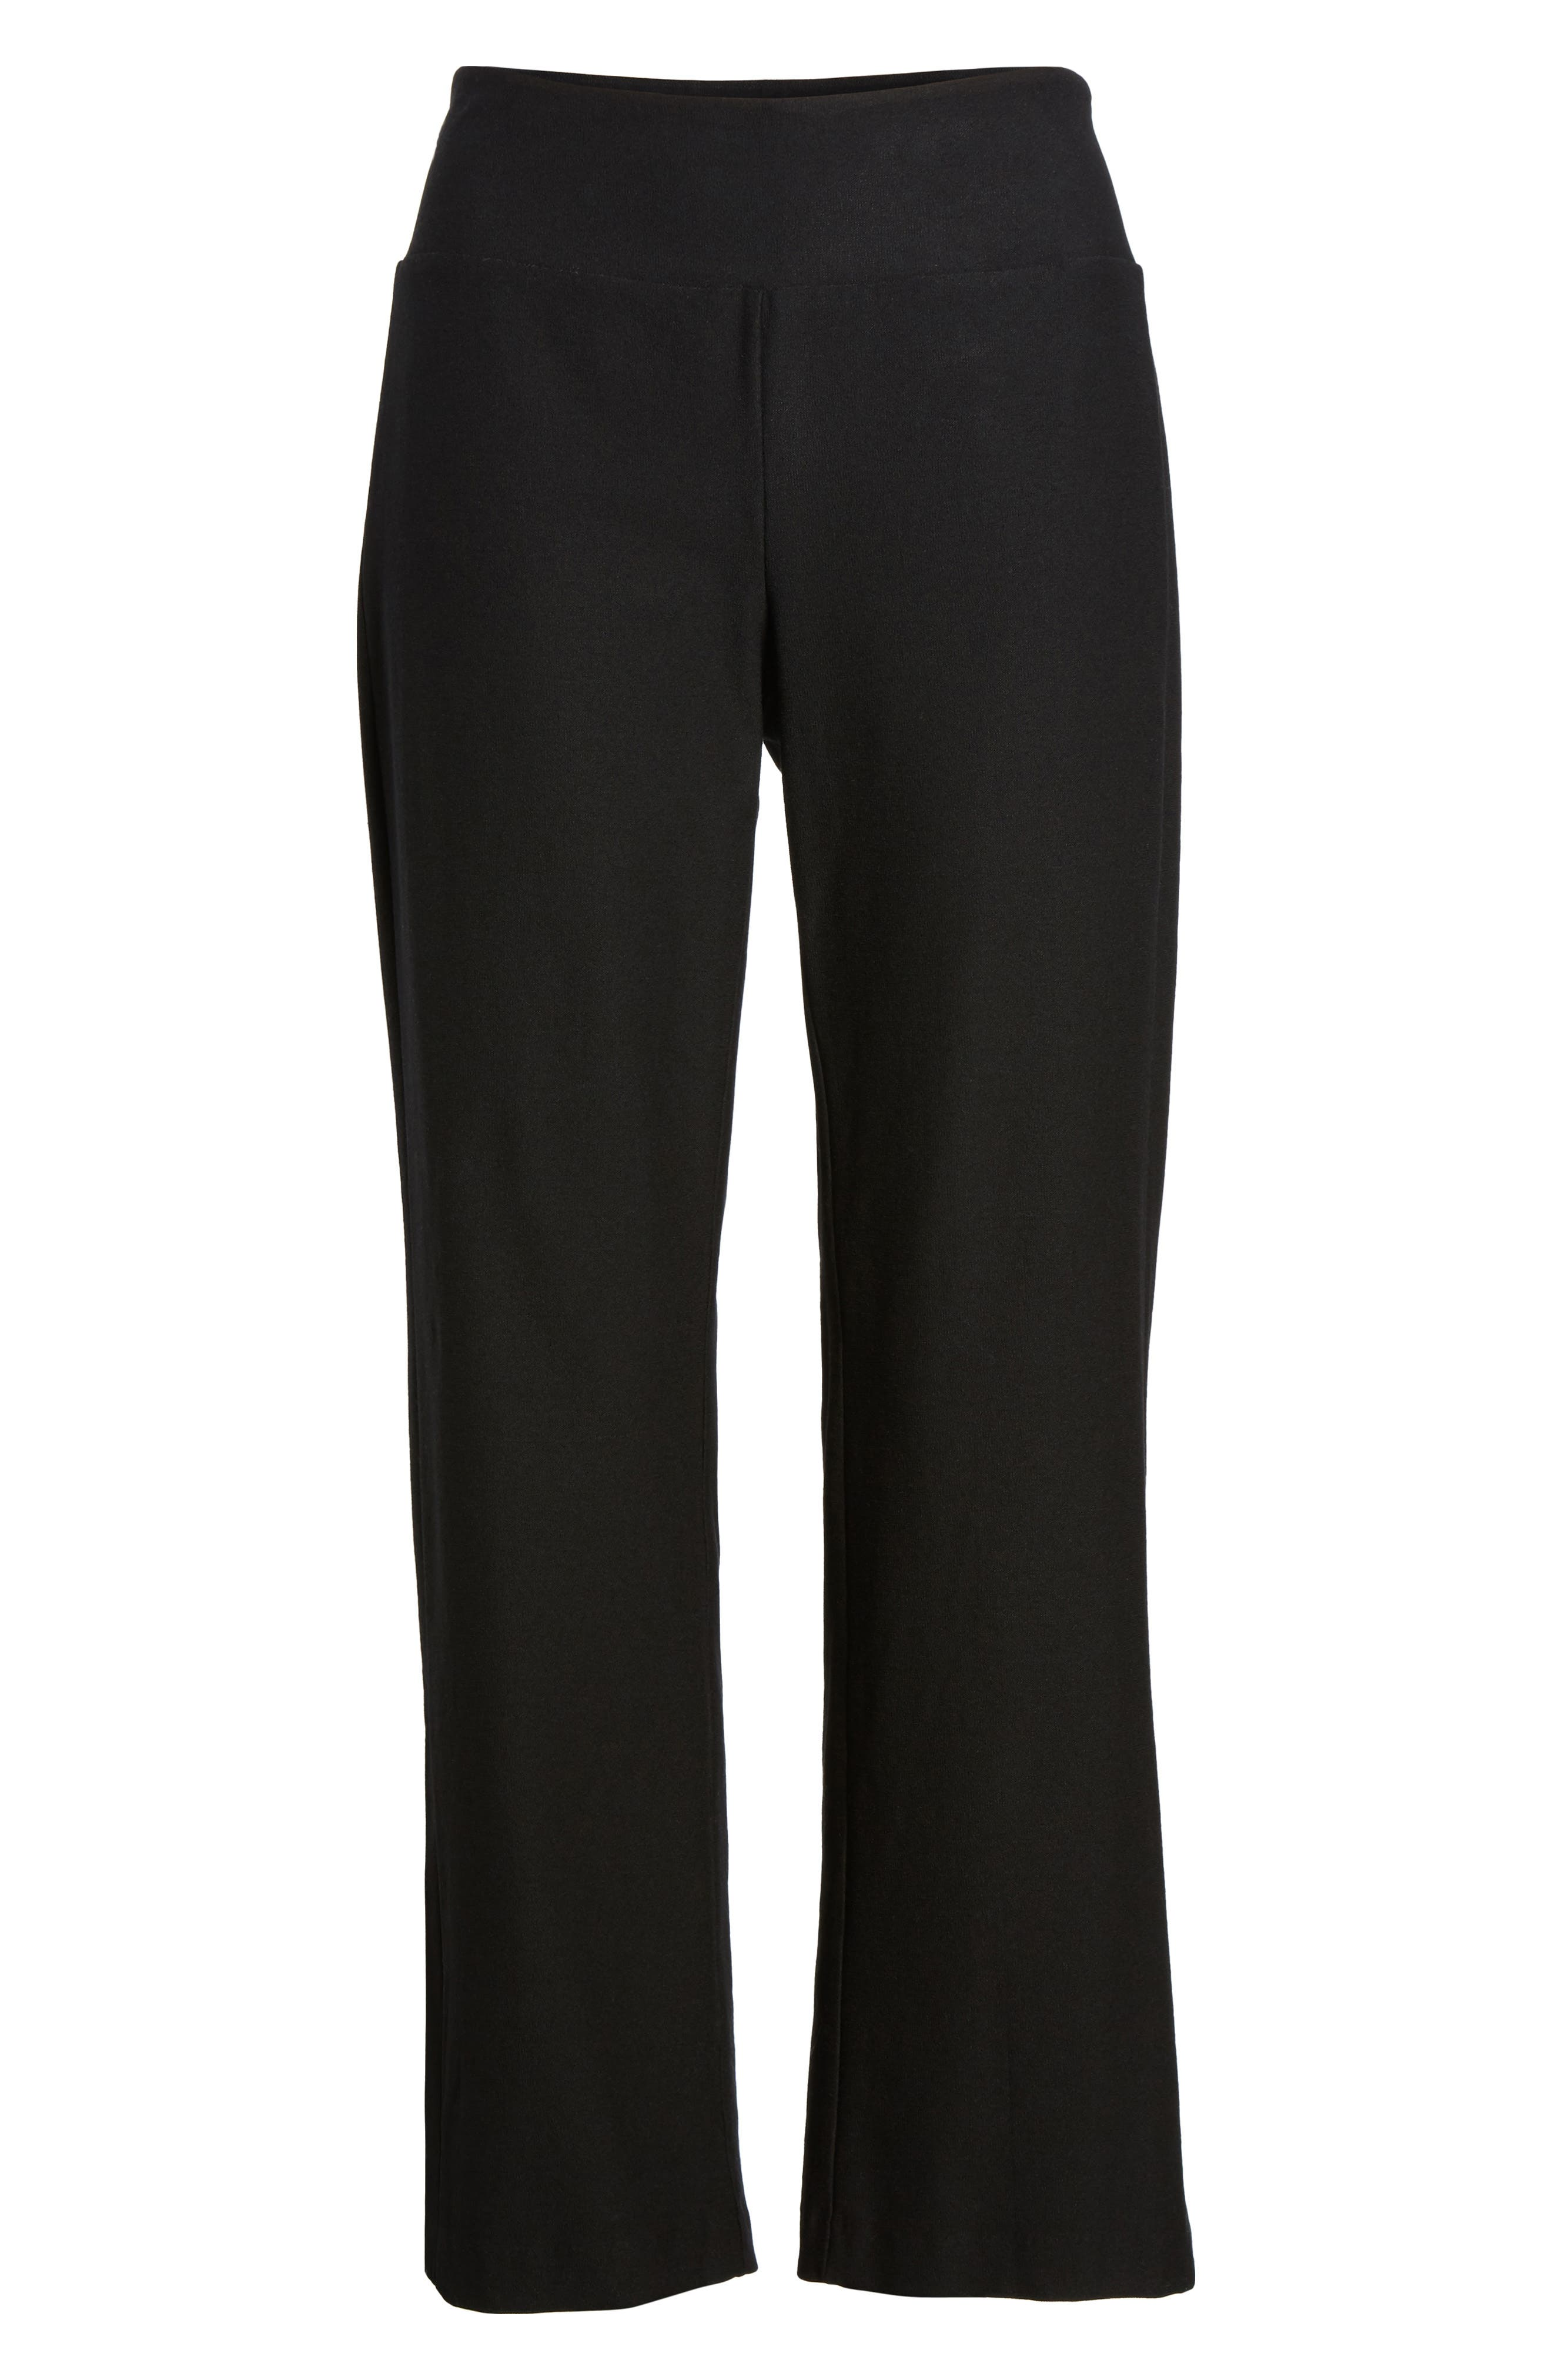 EILEEN FISHER,                             Bootcut Crop Pants,                             Alternate thumbnail 7, color,                             001